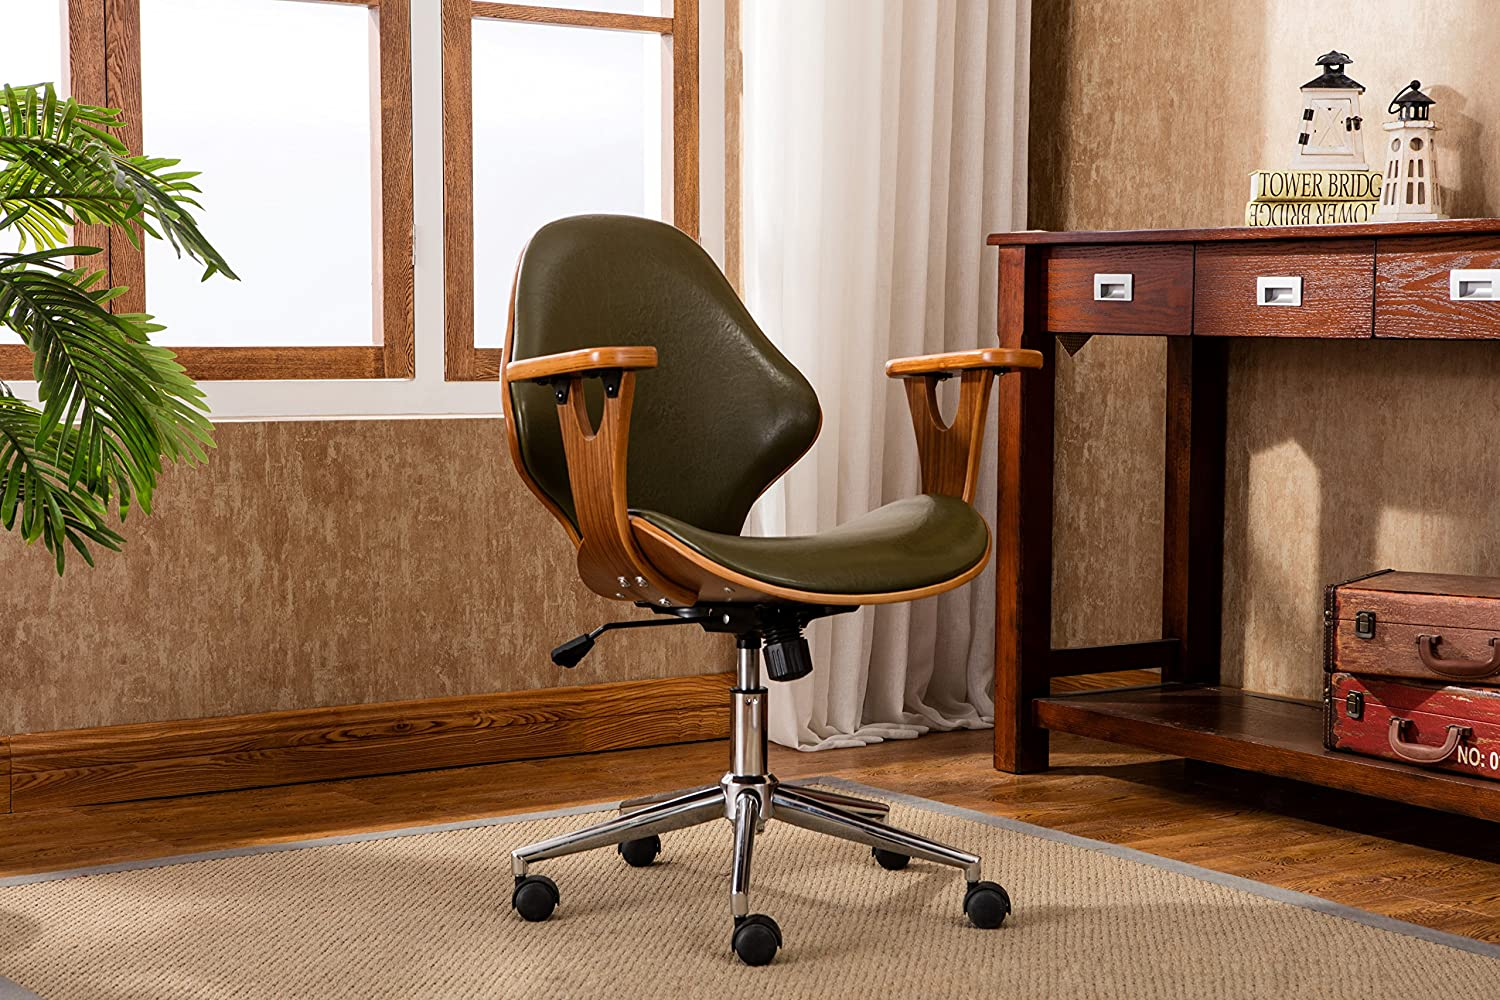 Porthos Home SKC009A GRN Lilian Office Chairs in Mid Century Modern Design with Arm Rests, Leather Upholstery, Height Adjustment & Stainless Steel Legs, Green